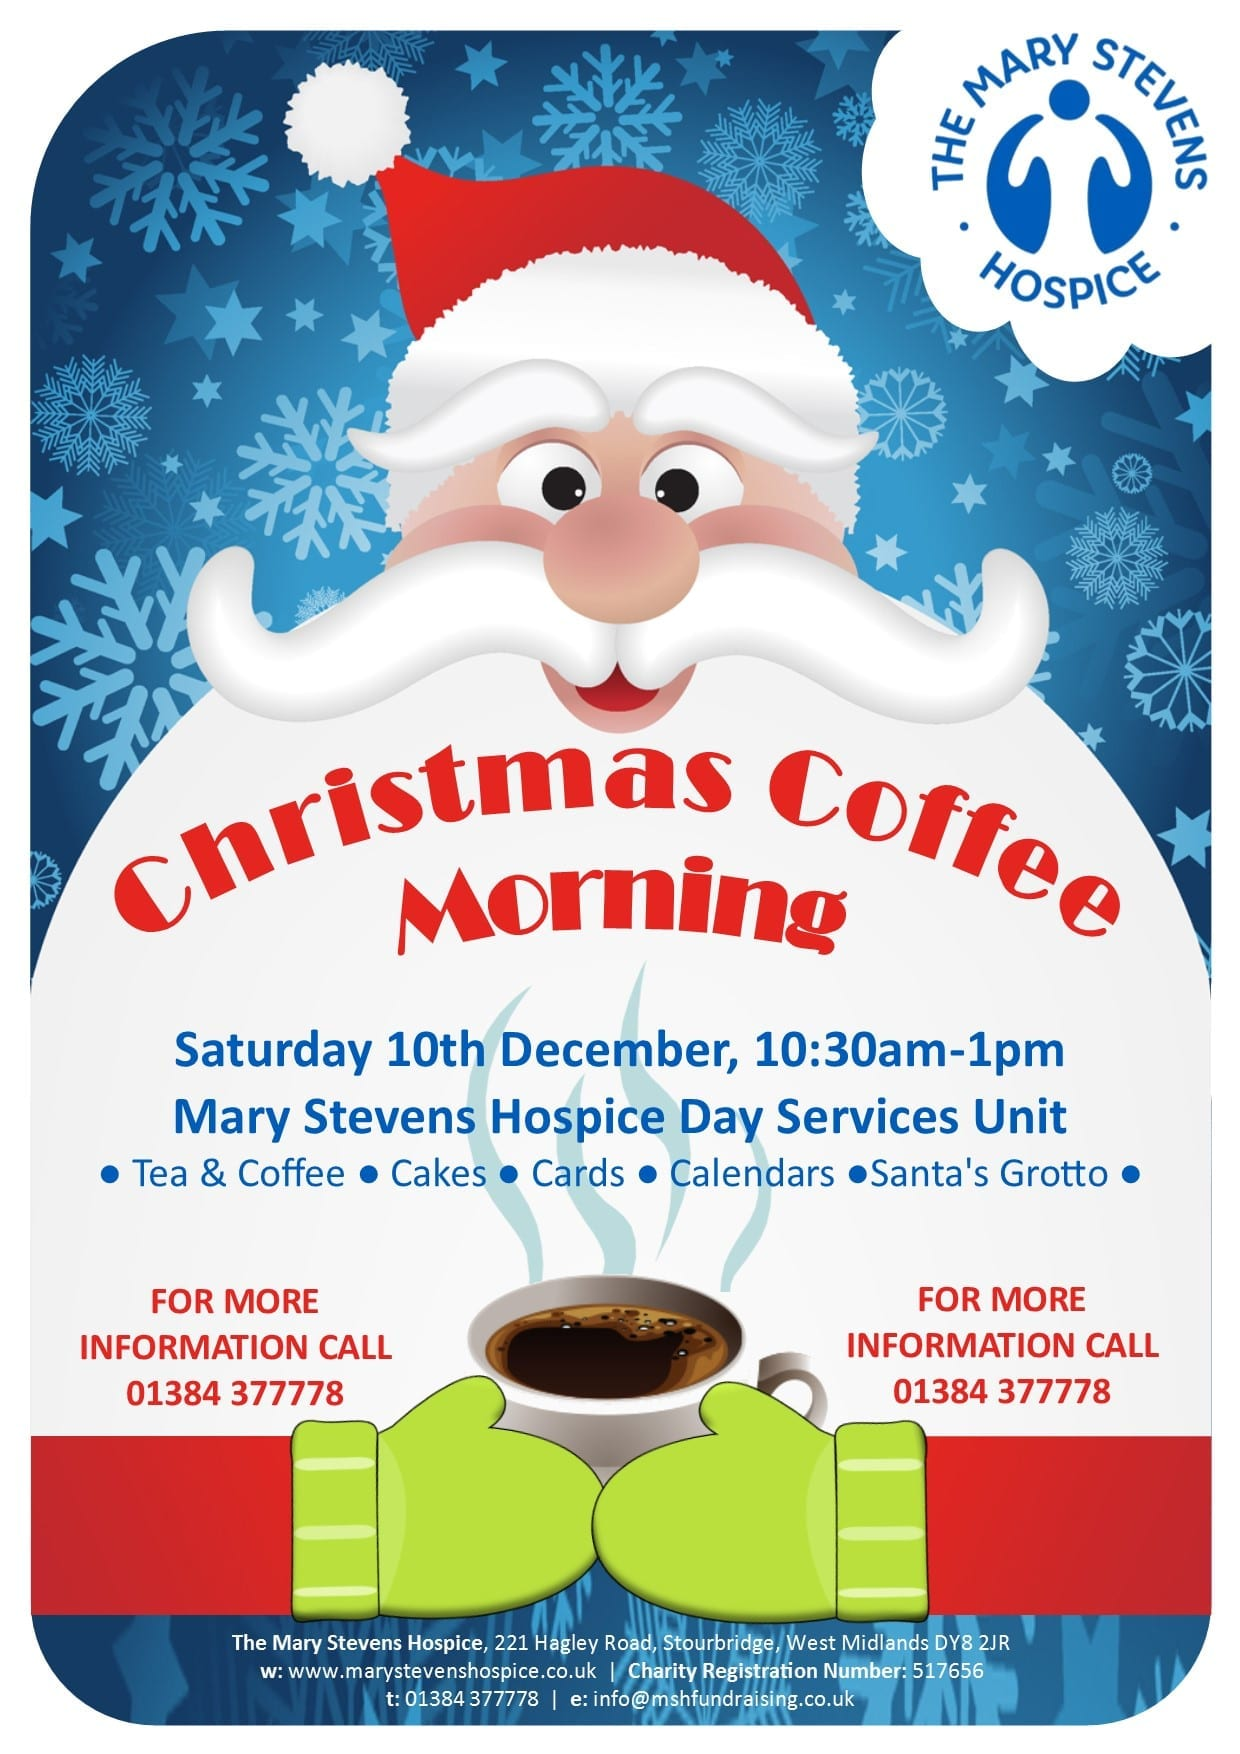 Christmas Coffee Morning At The Mary Stevens Hospice